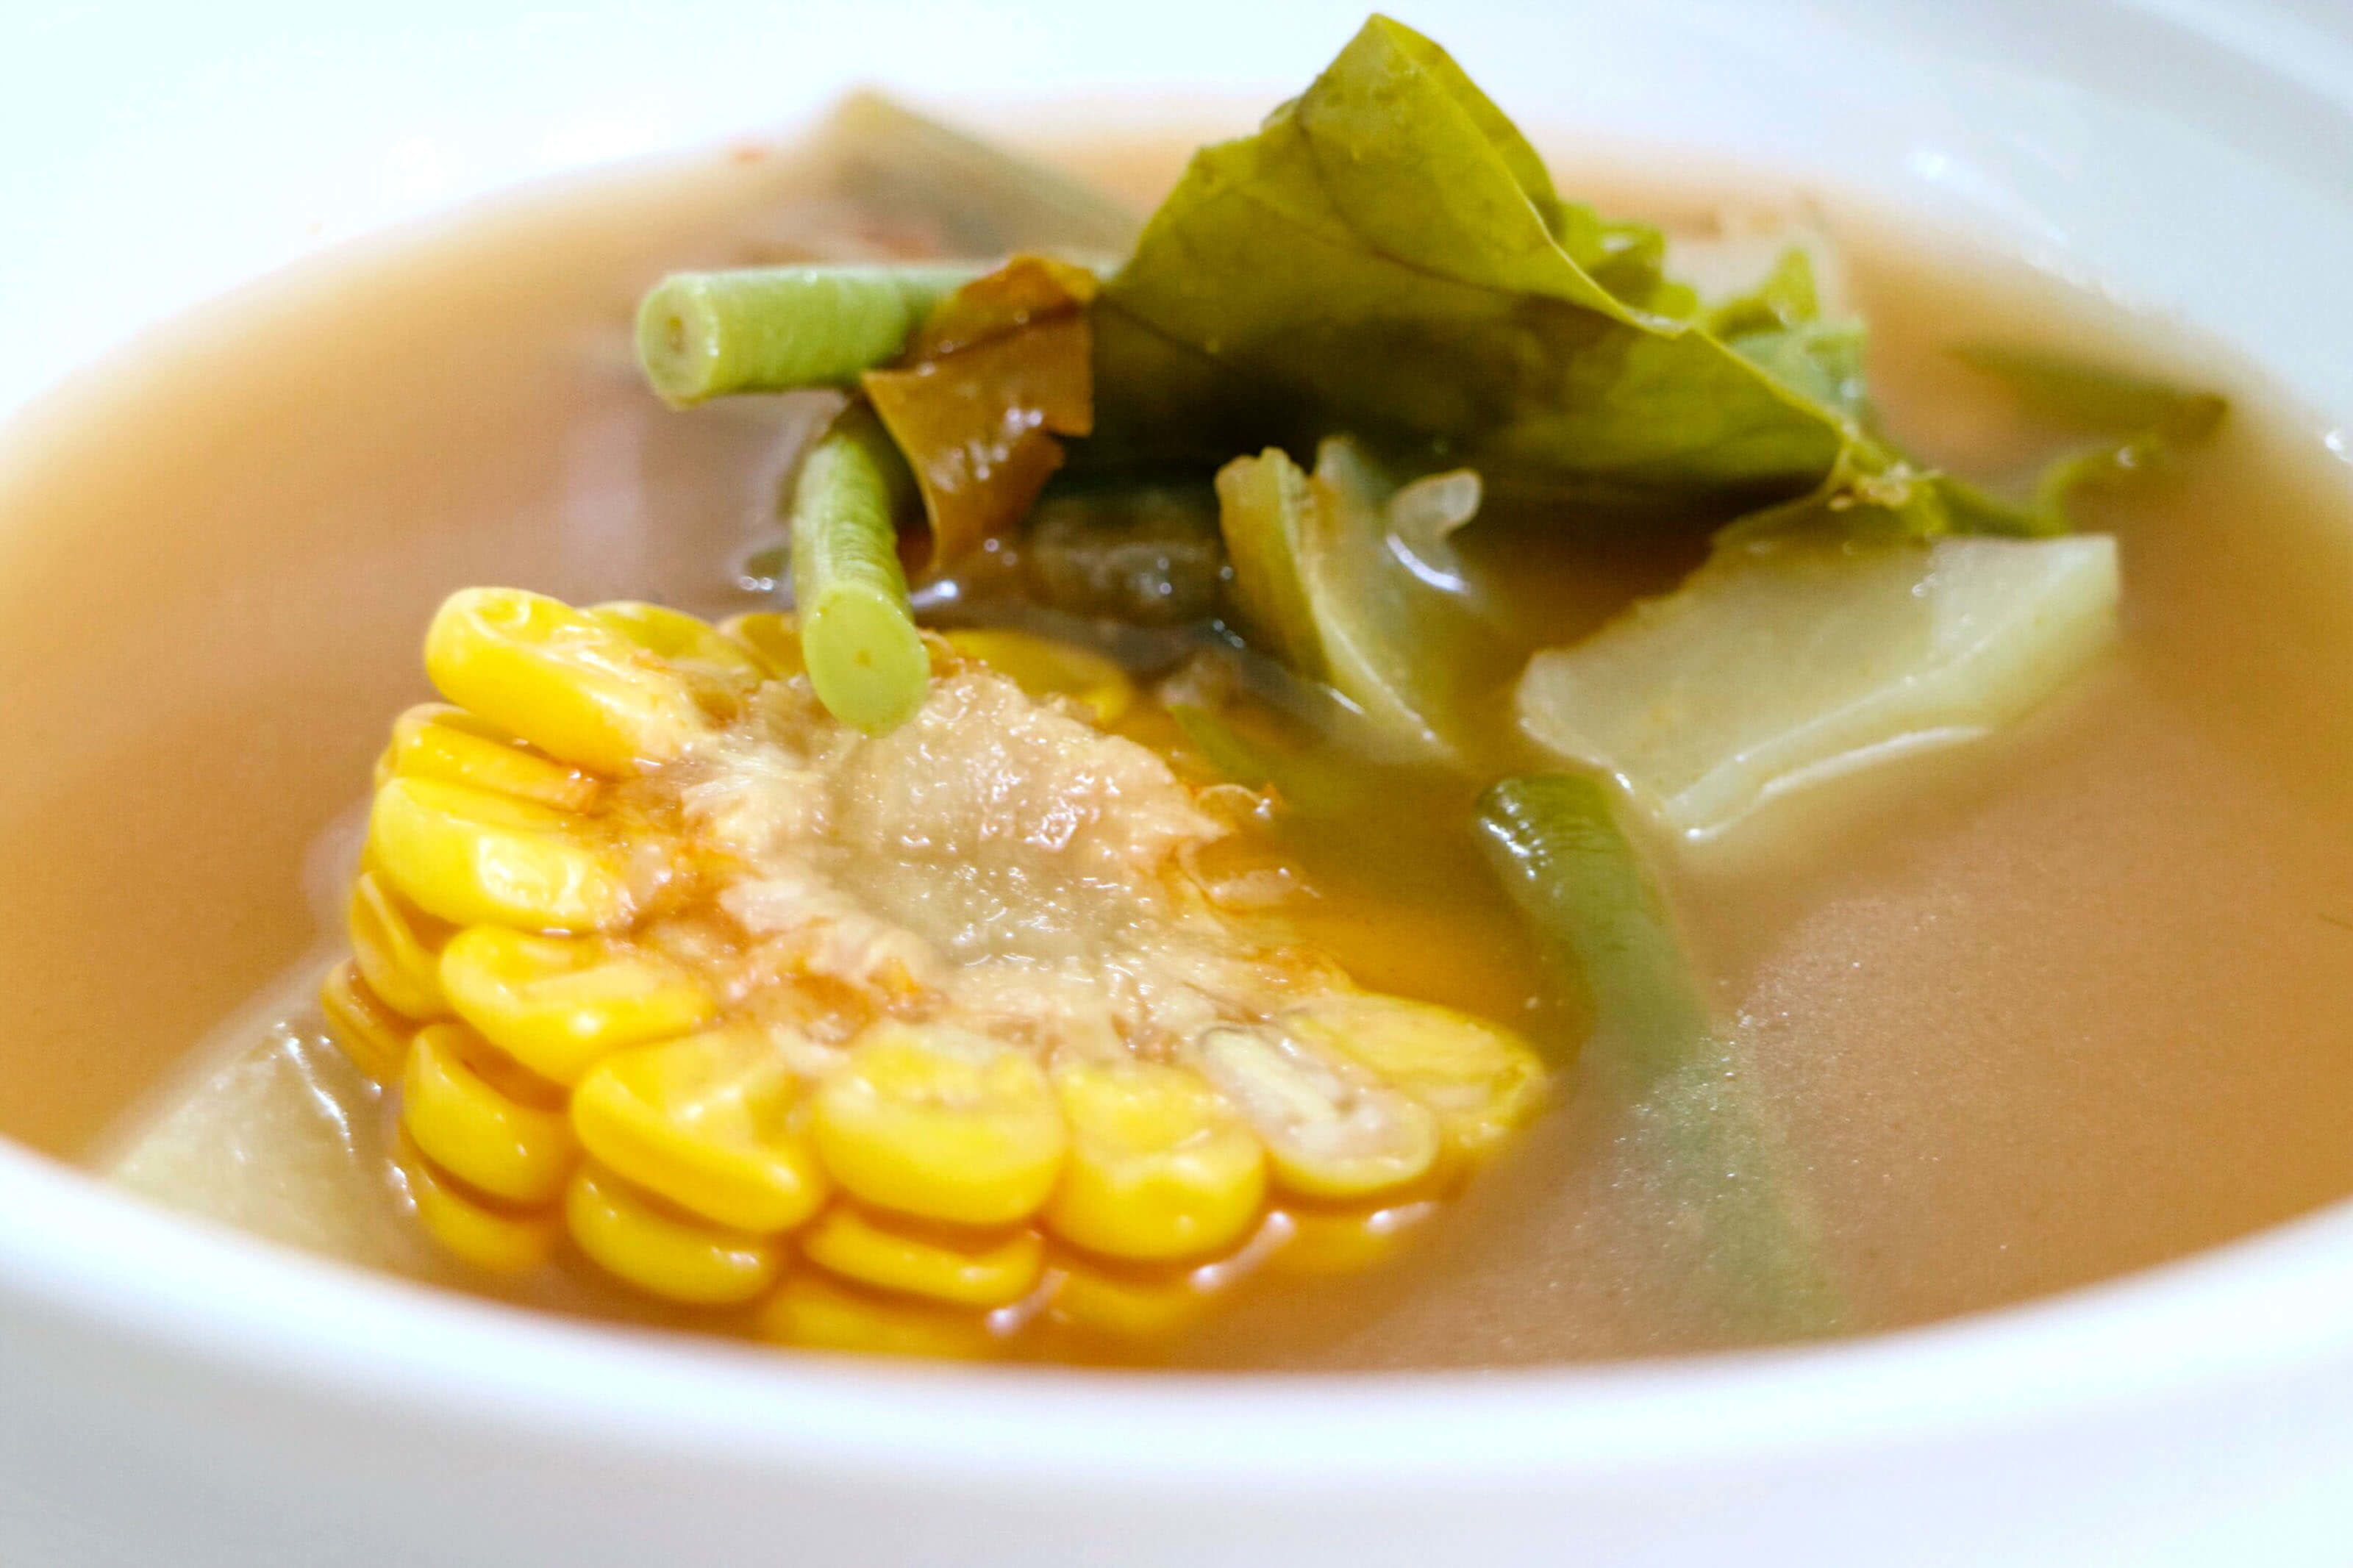 An Indonesian dish of corn on the cob, beans, and bay leaves in a broth